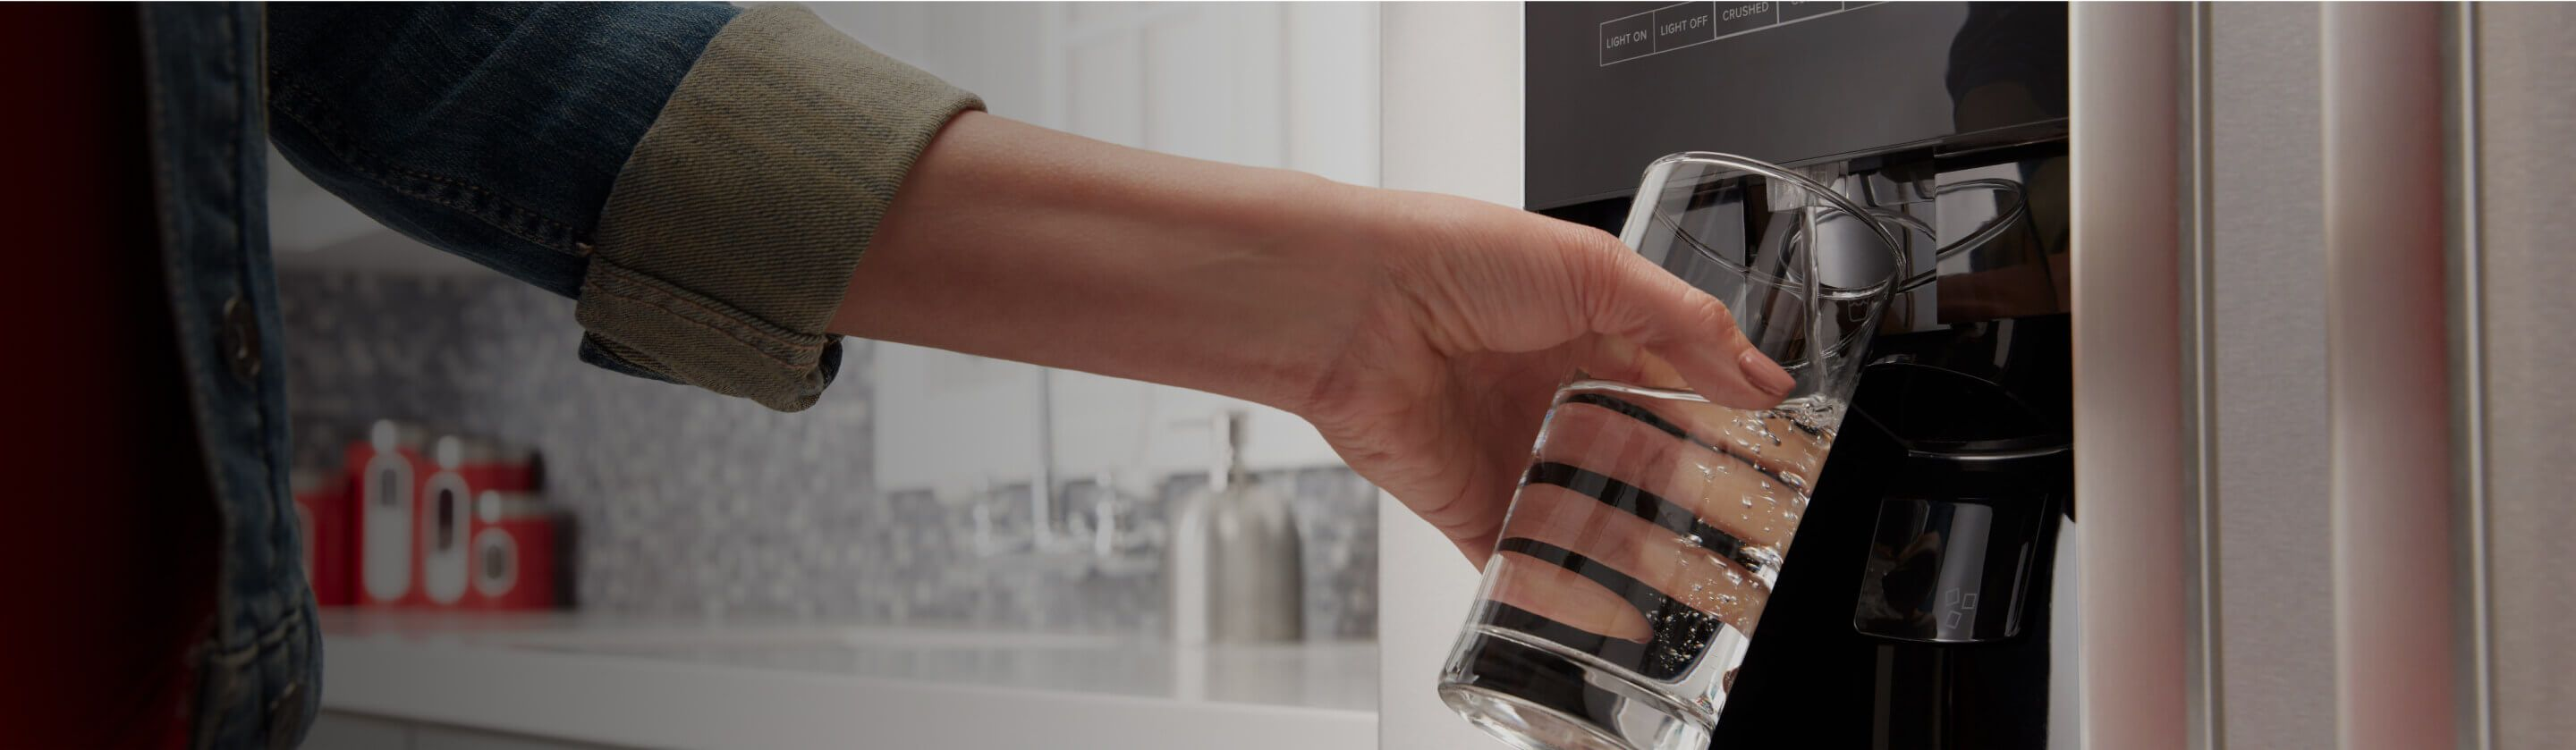 Person filling a glass from a refrigerator water dispenser